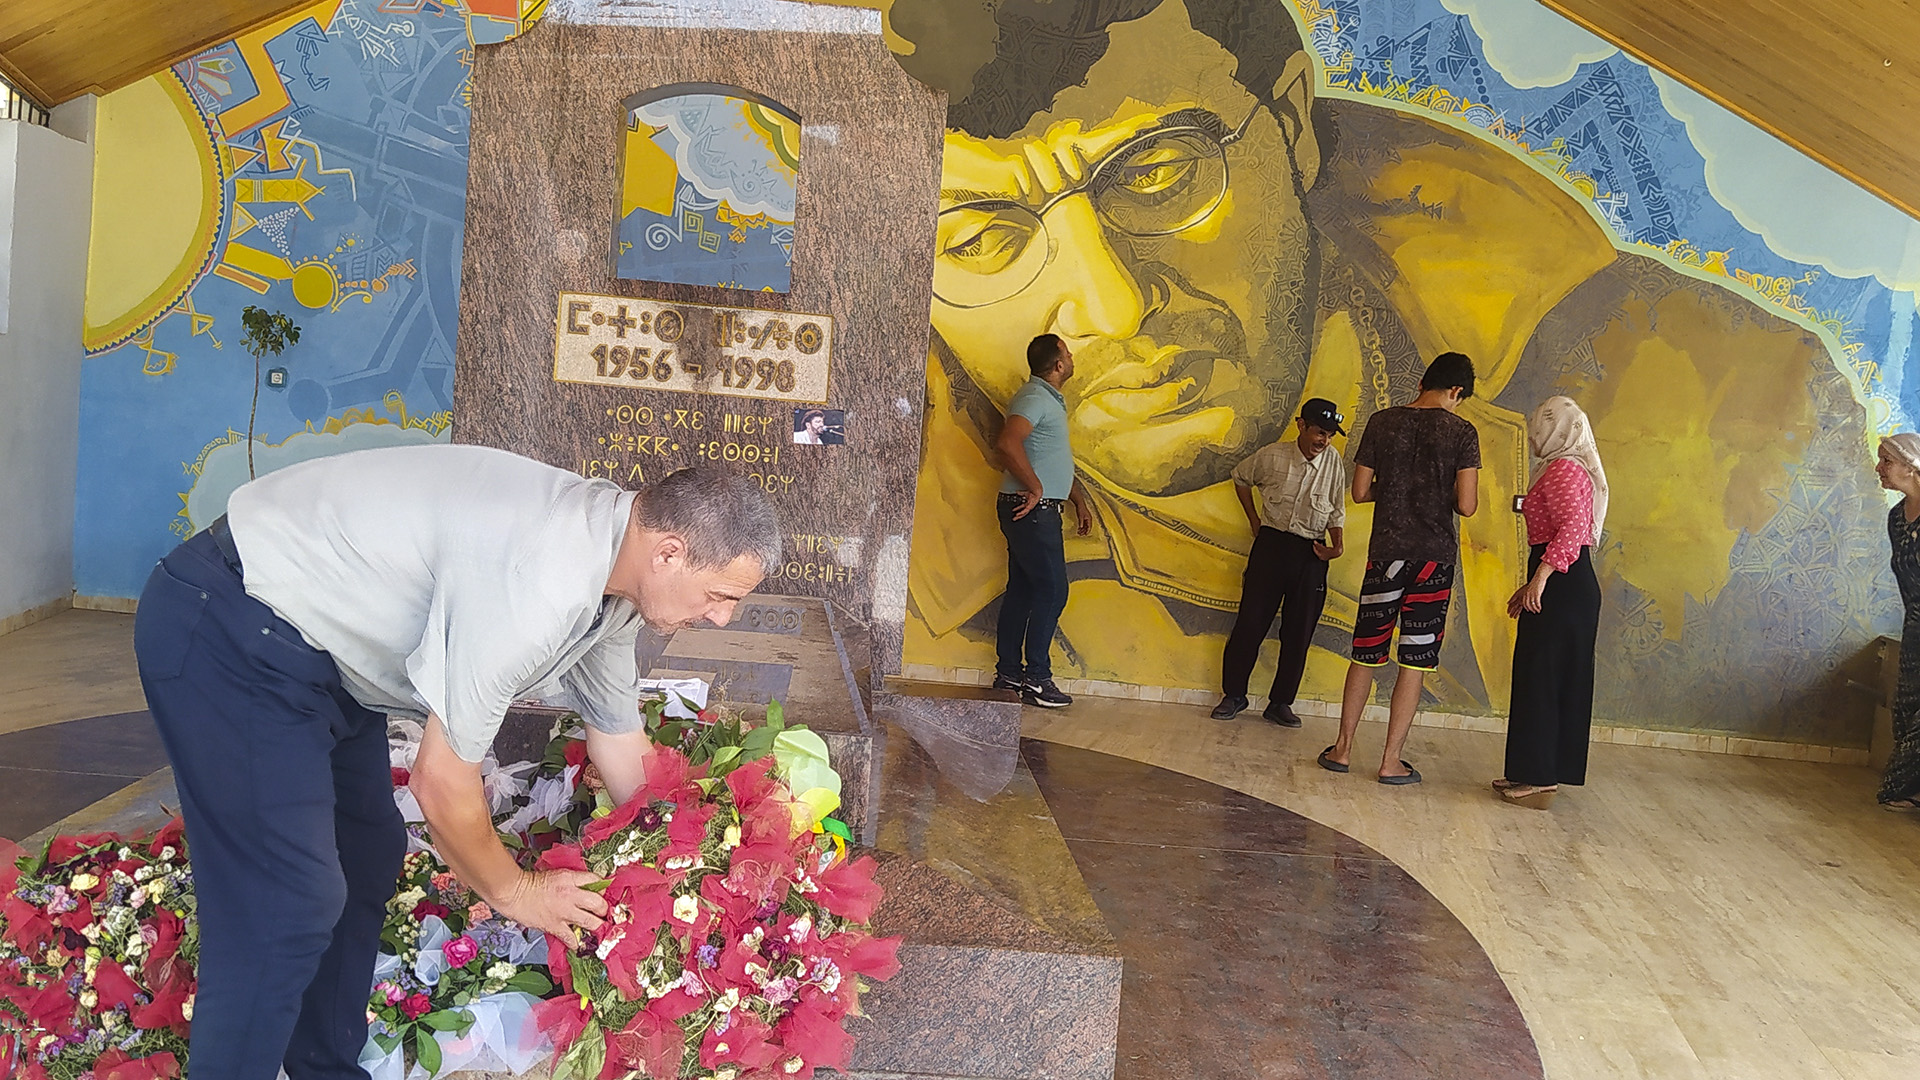 Algeria: Kabylia Marks The 23rd Anniversary Of The Murder Of Controversial Singer Matoub Lounès